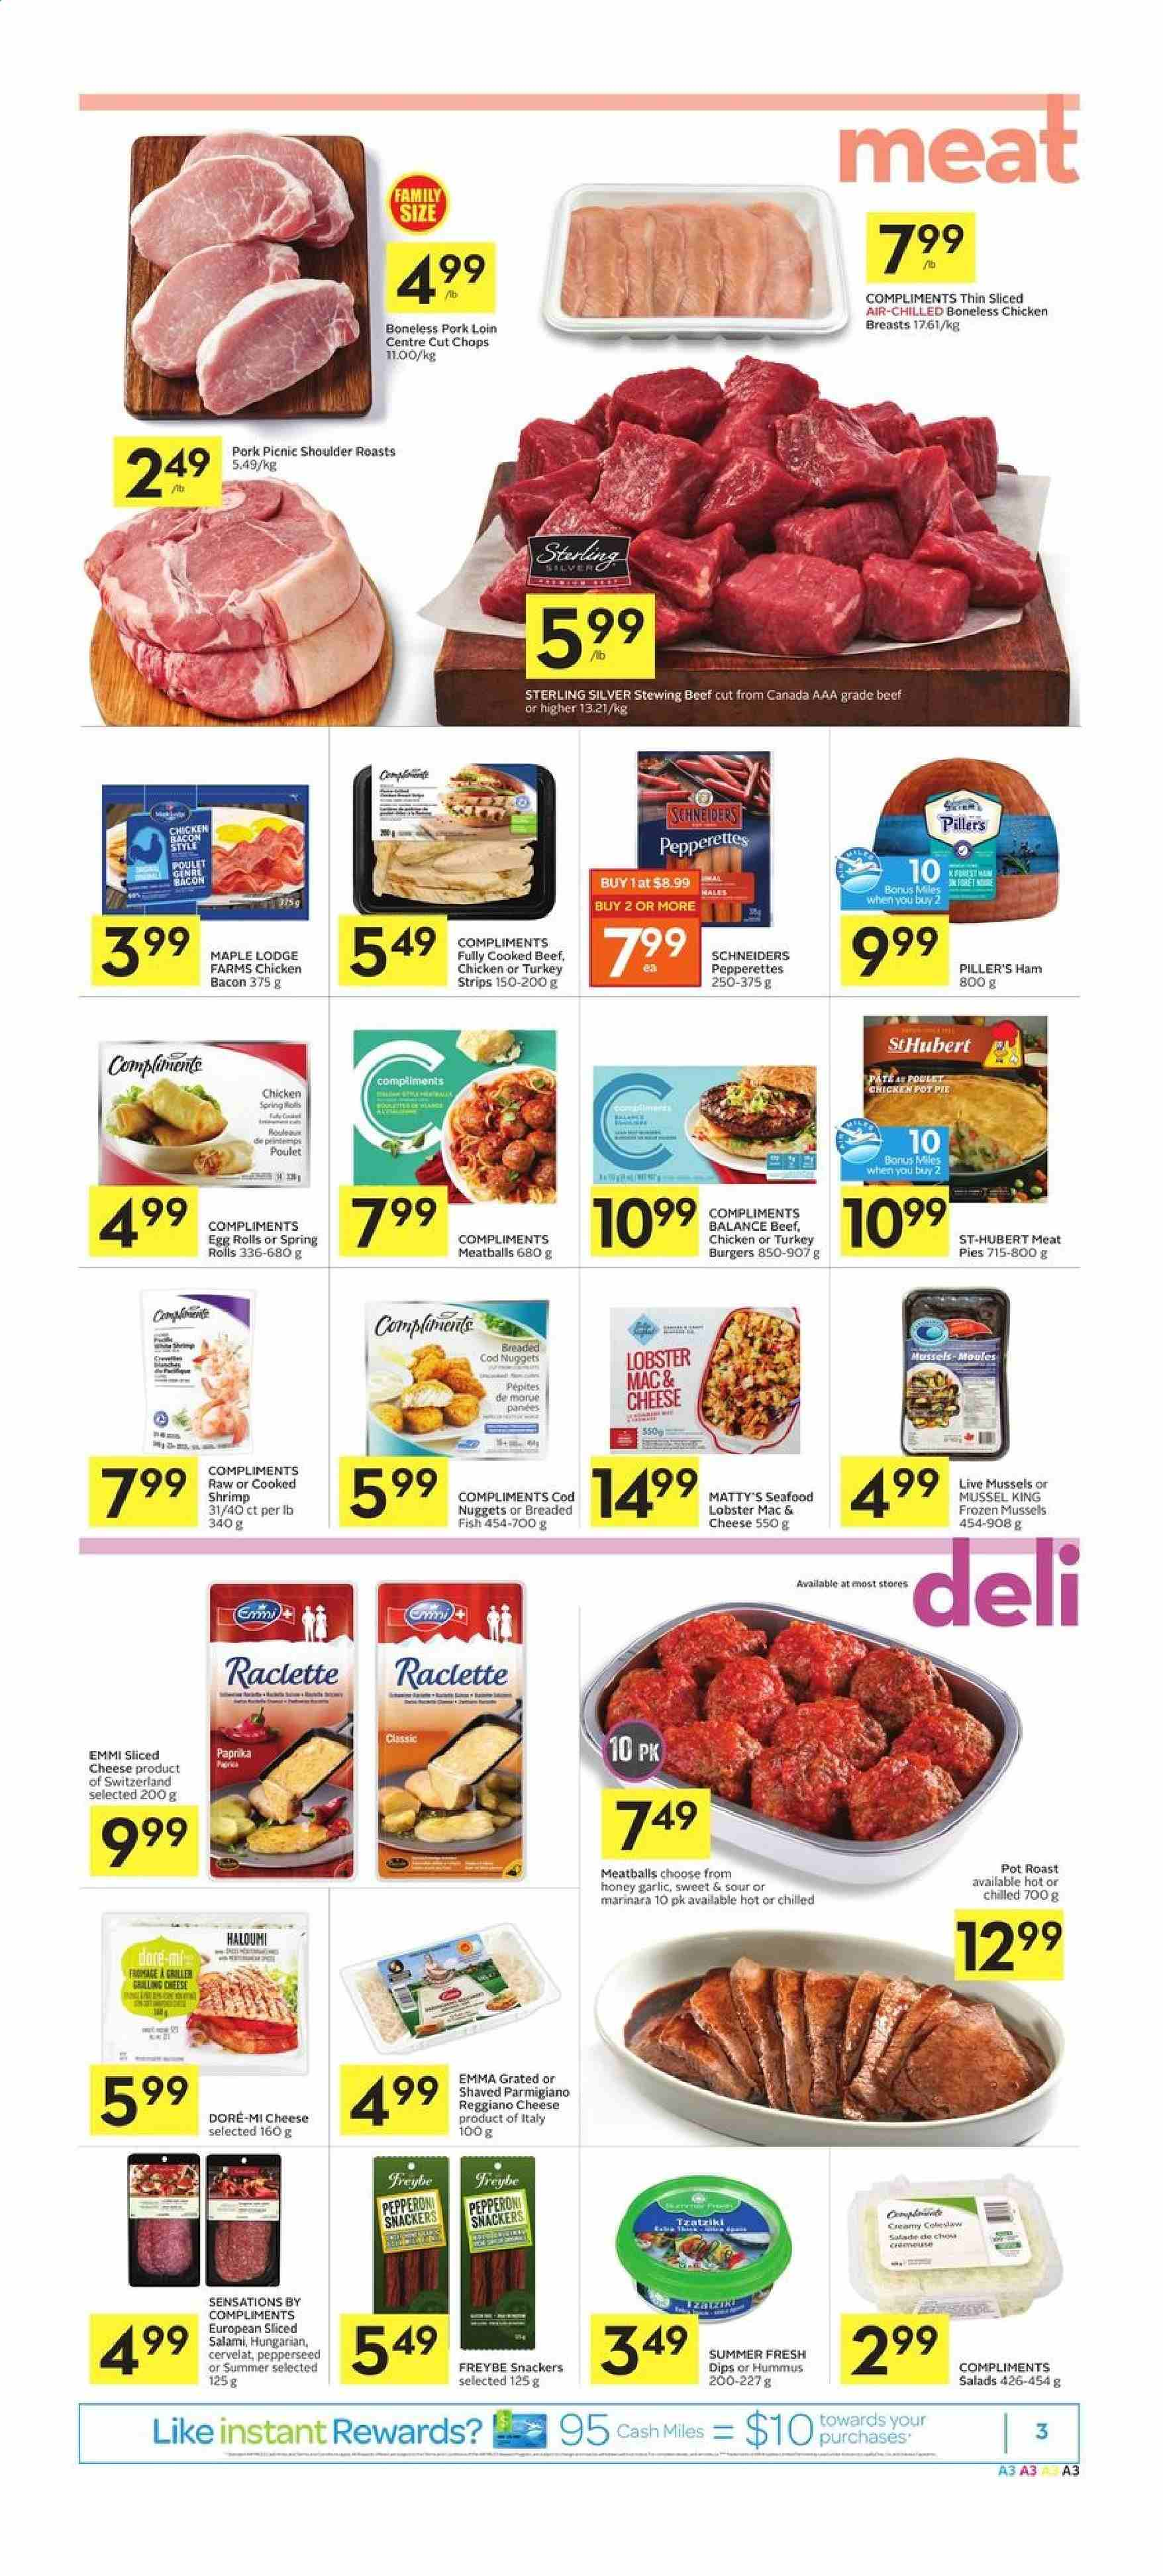 Foodland Flyer  - January 16, 2020 - January 22, 2020. Page 3.